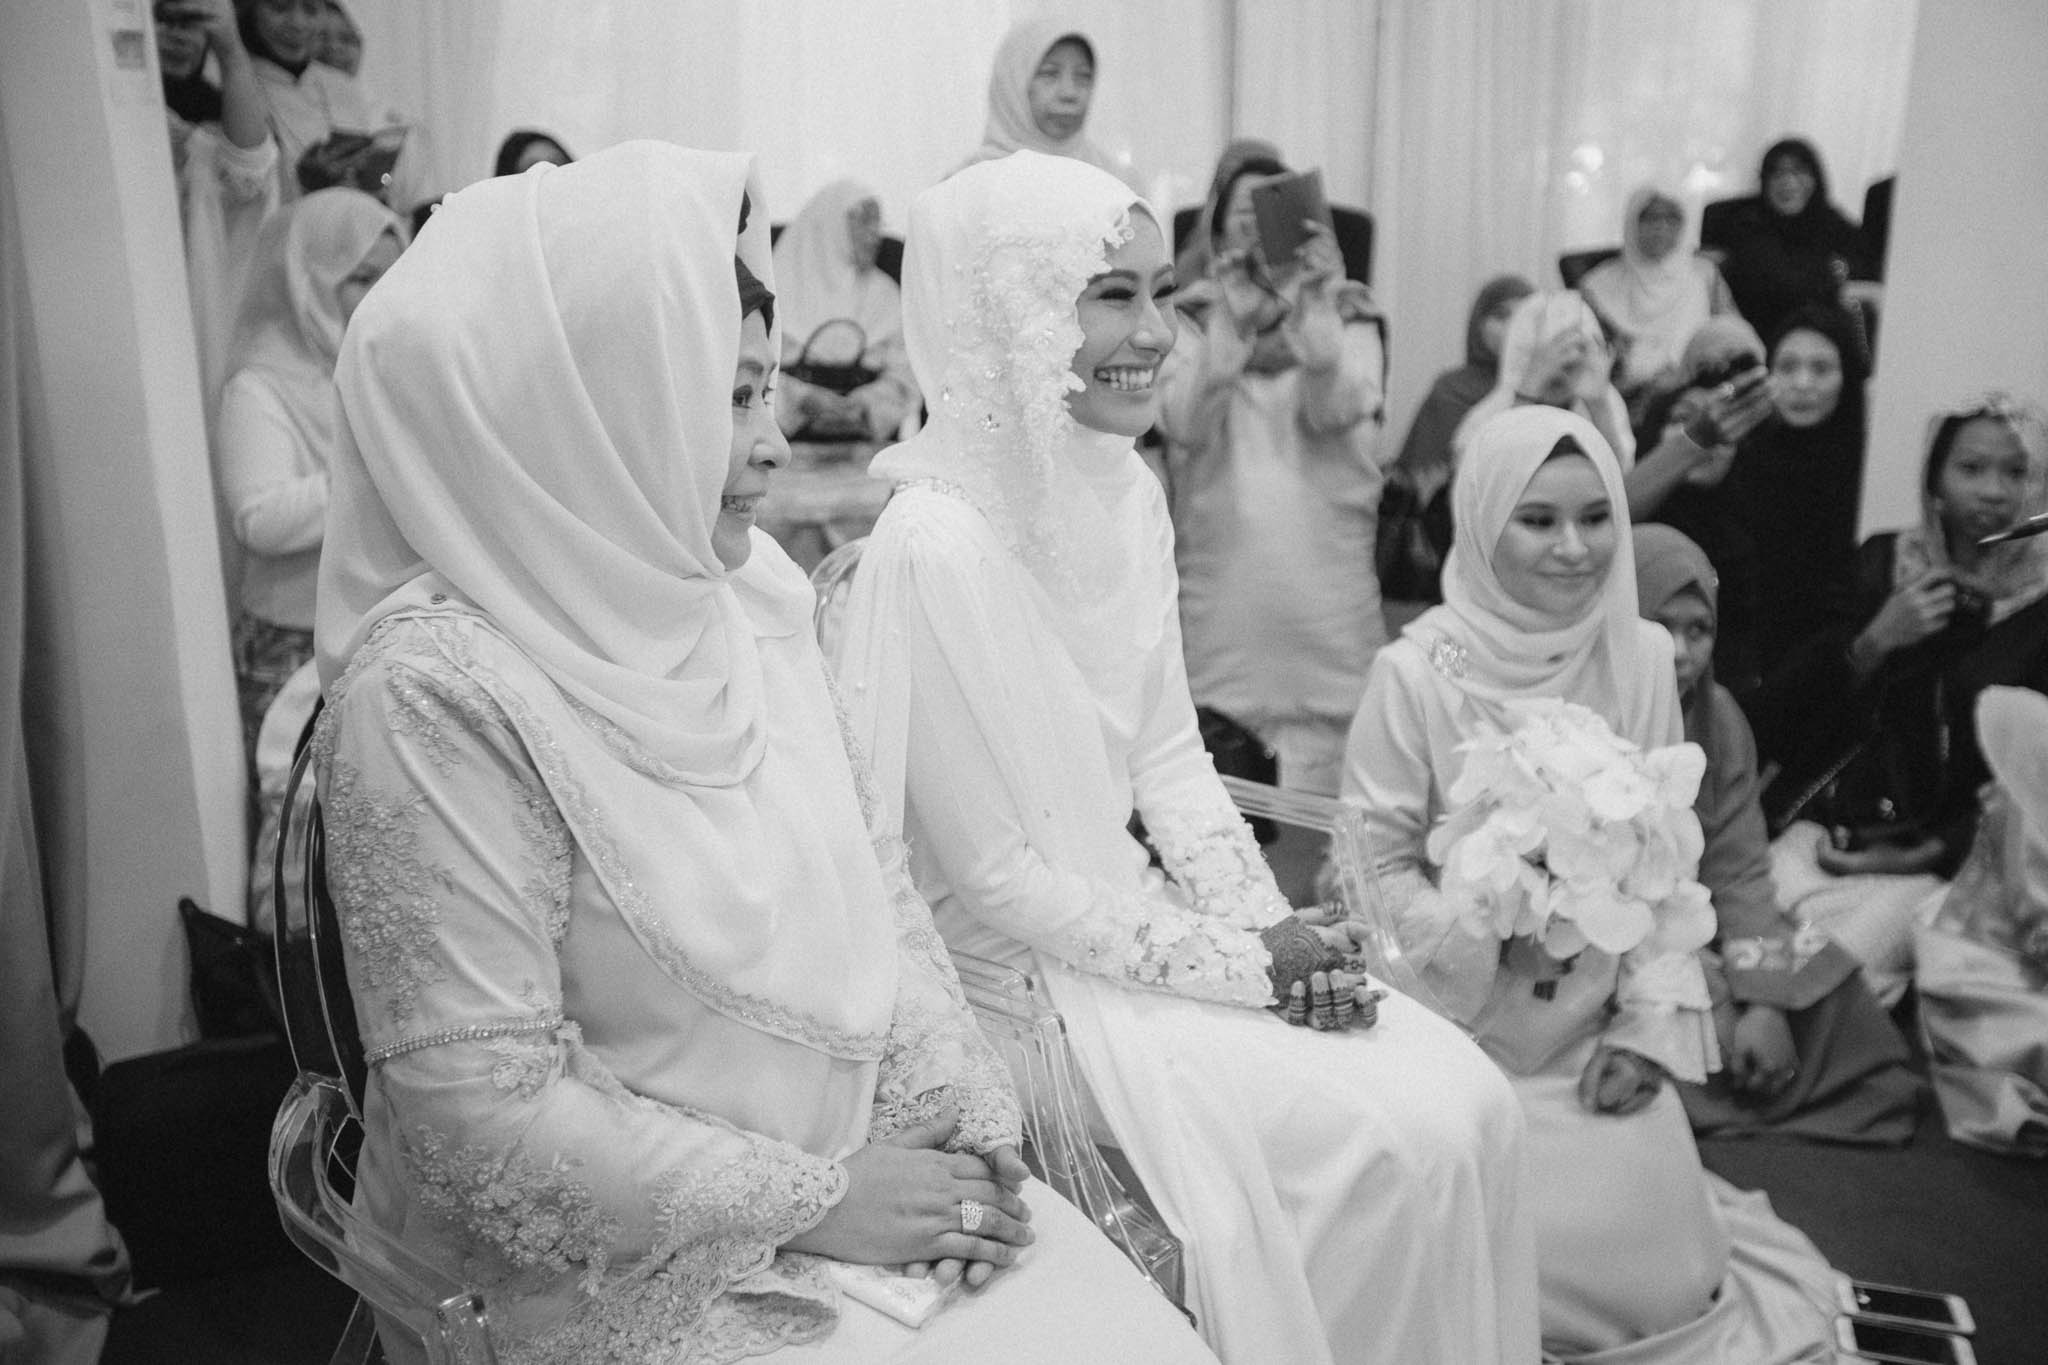 singapore-wedding-photographer-sarah-razif-23.jpg